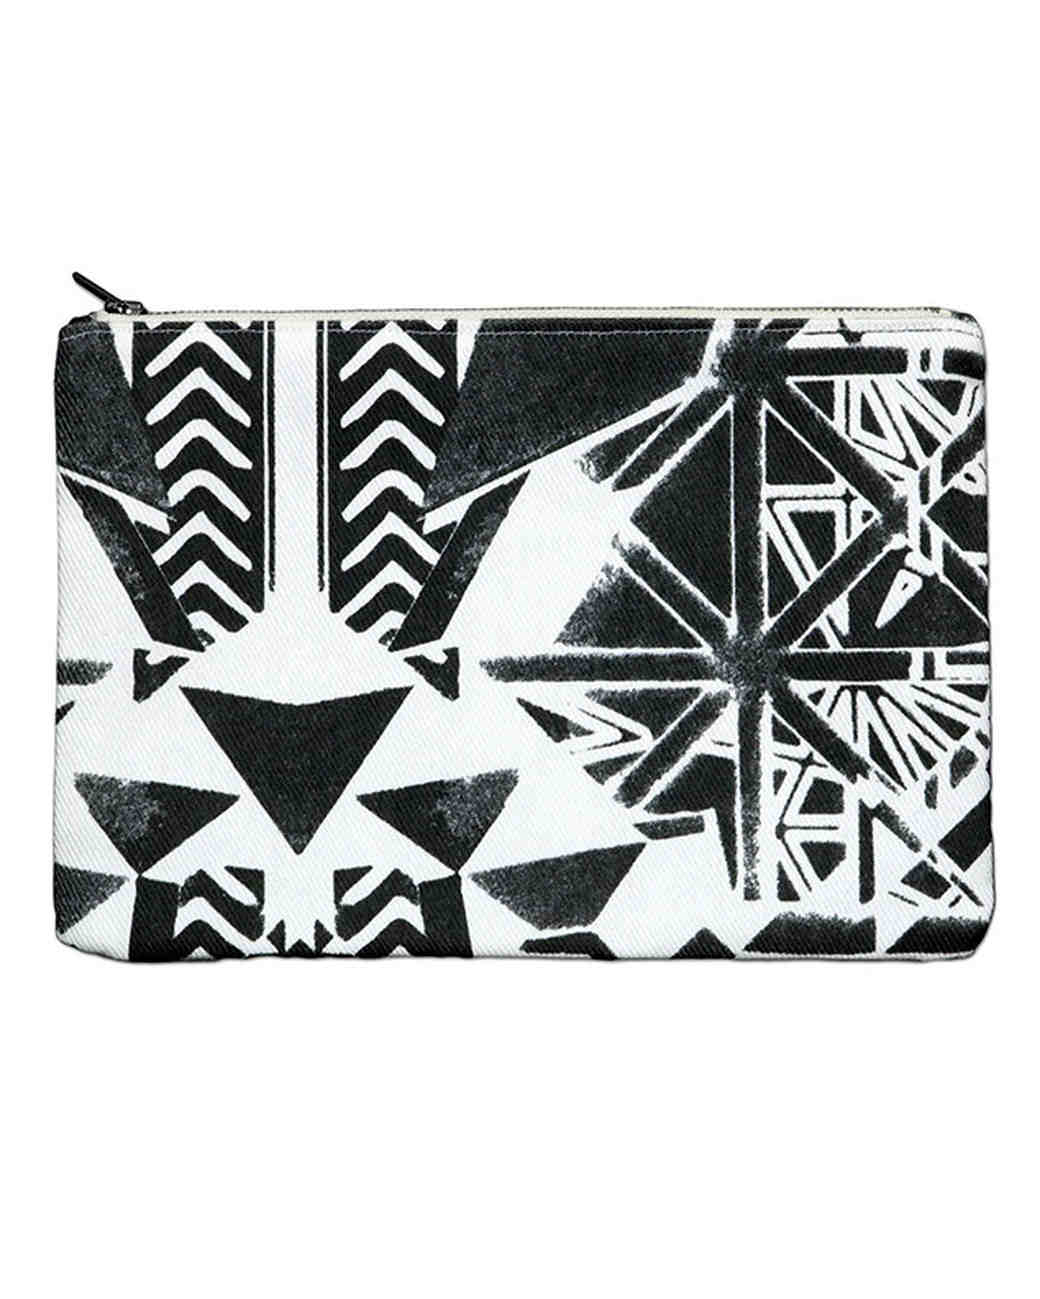 savannah hayes black and white pouch